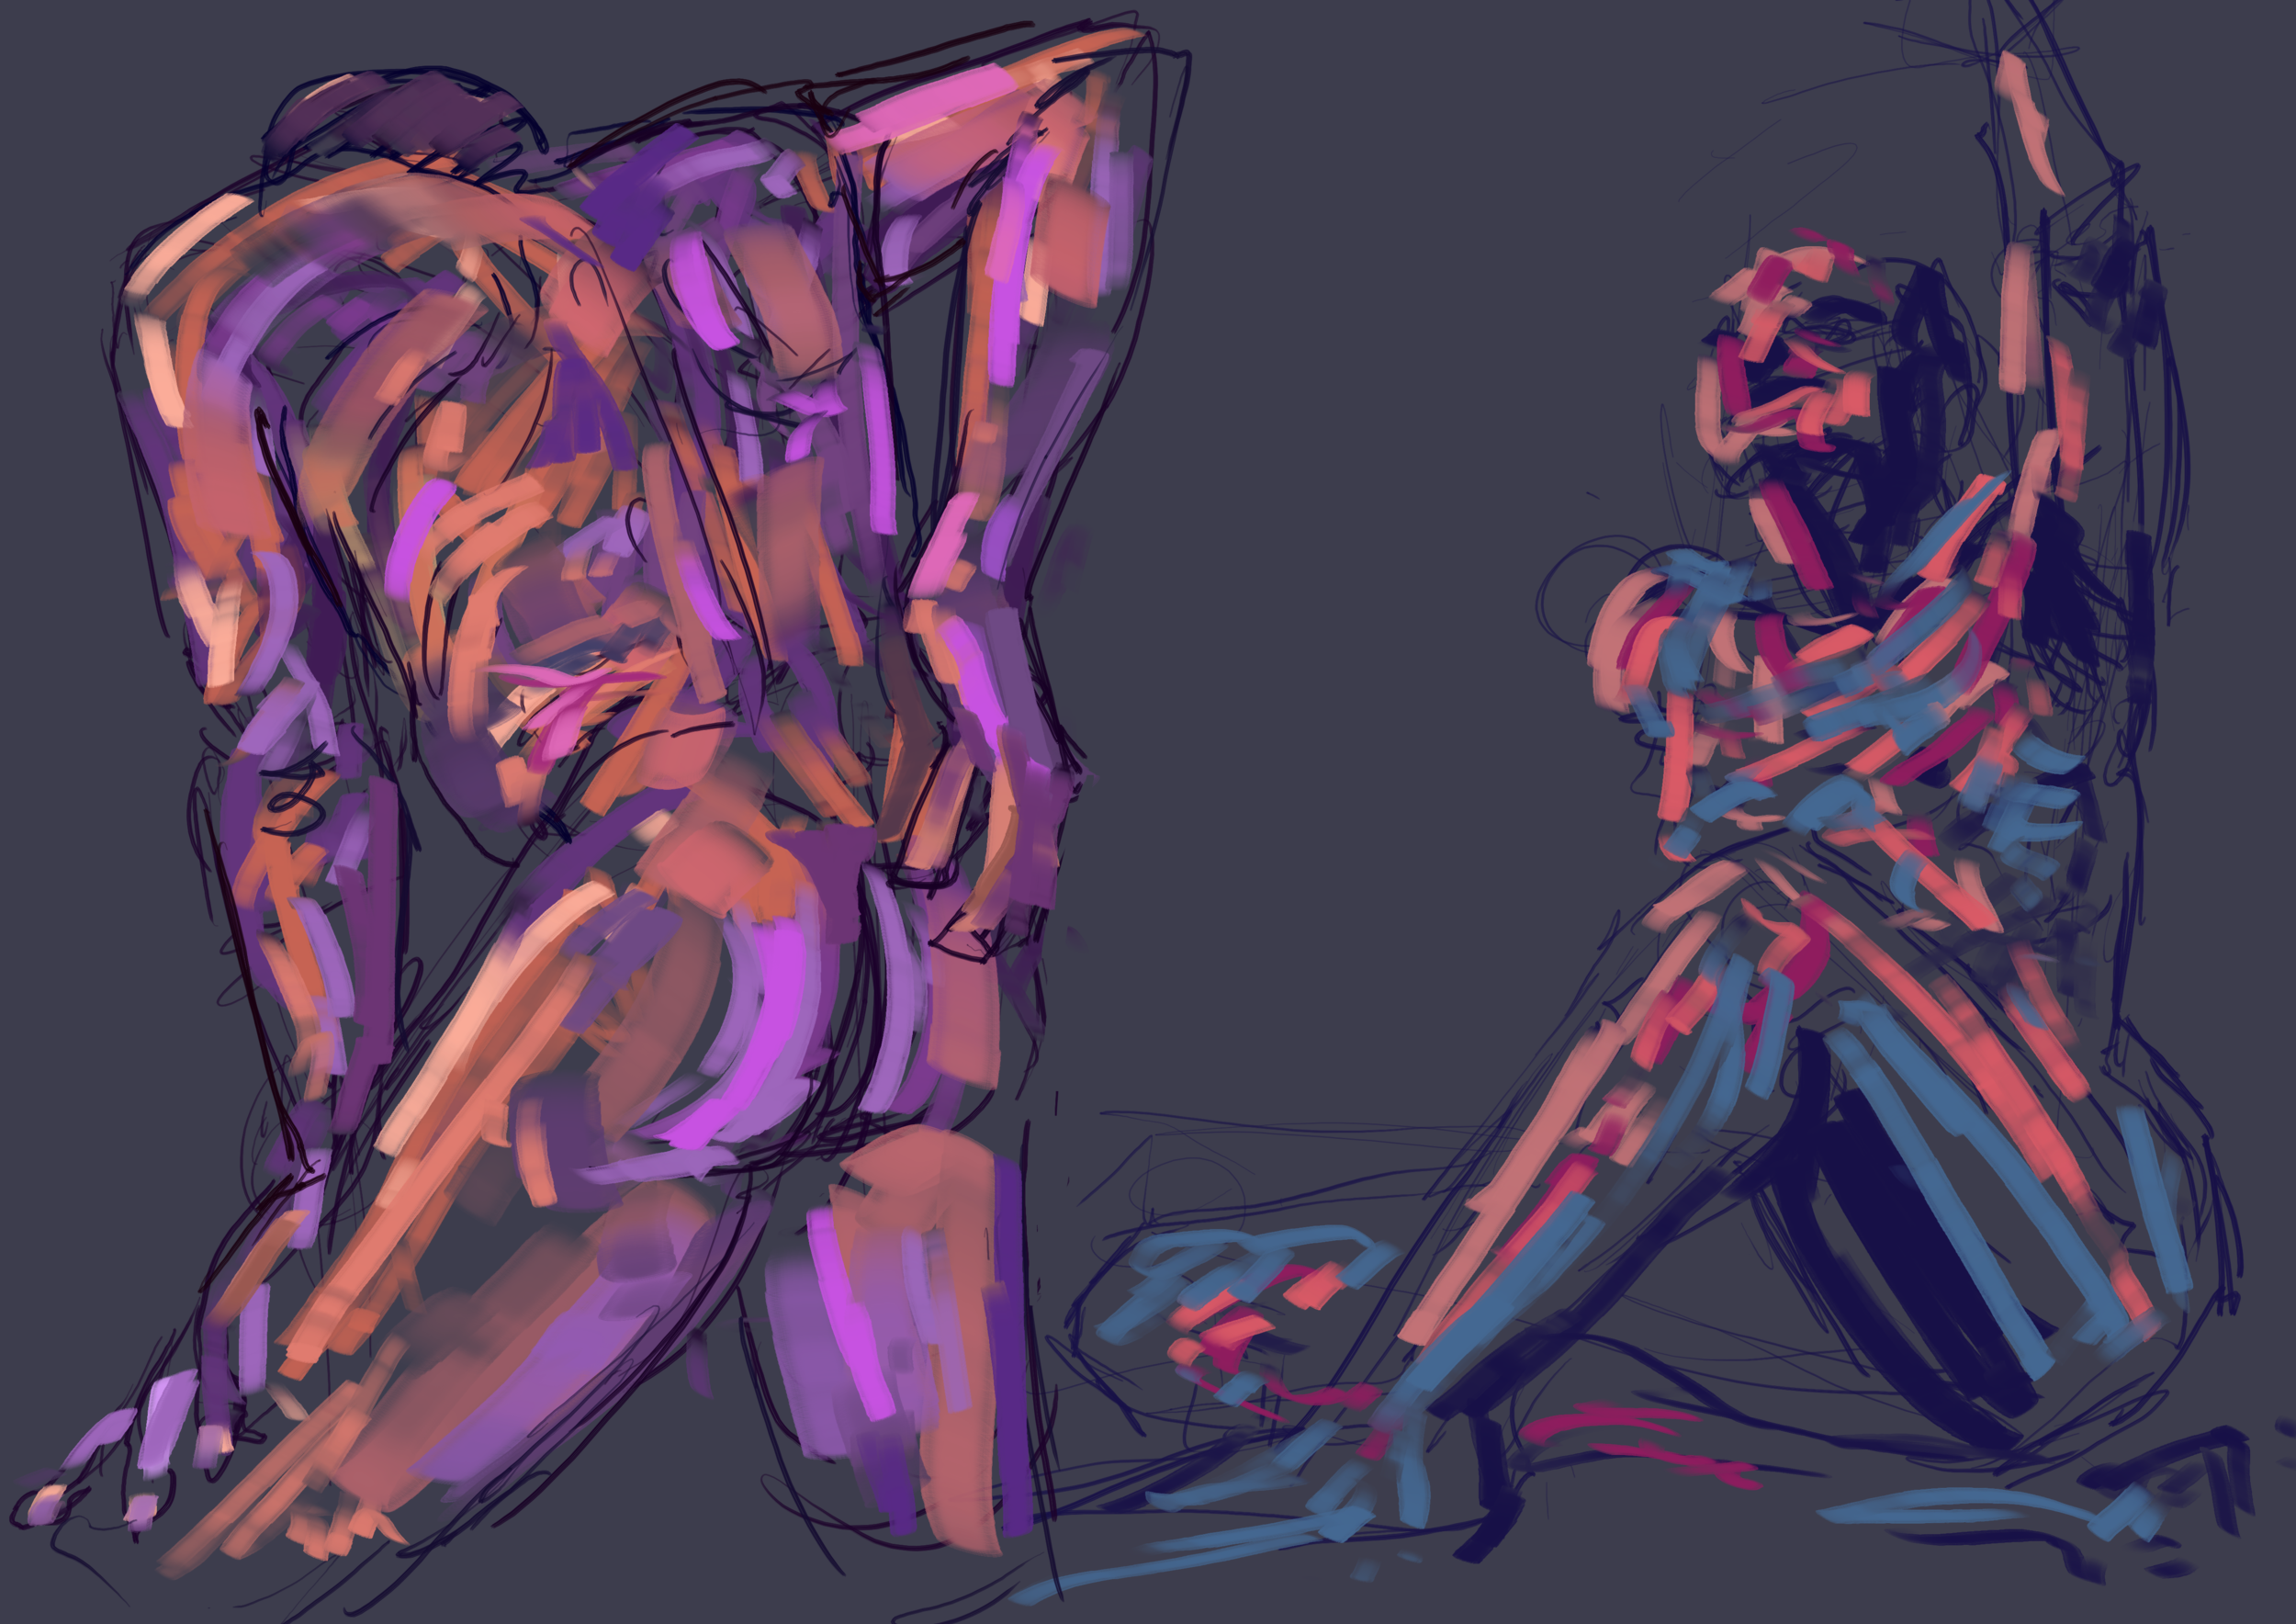 figure drawing oct 15.png